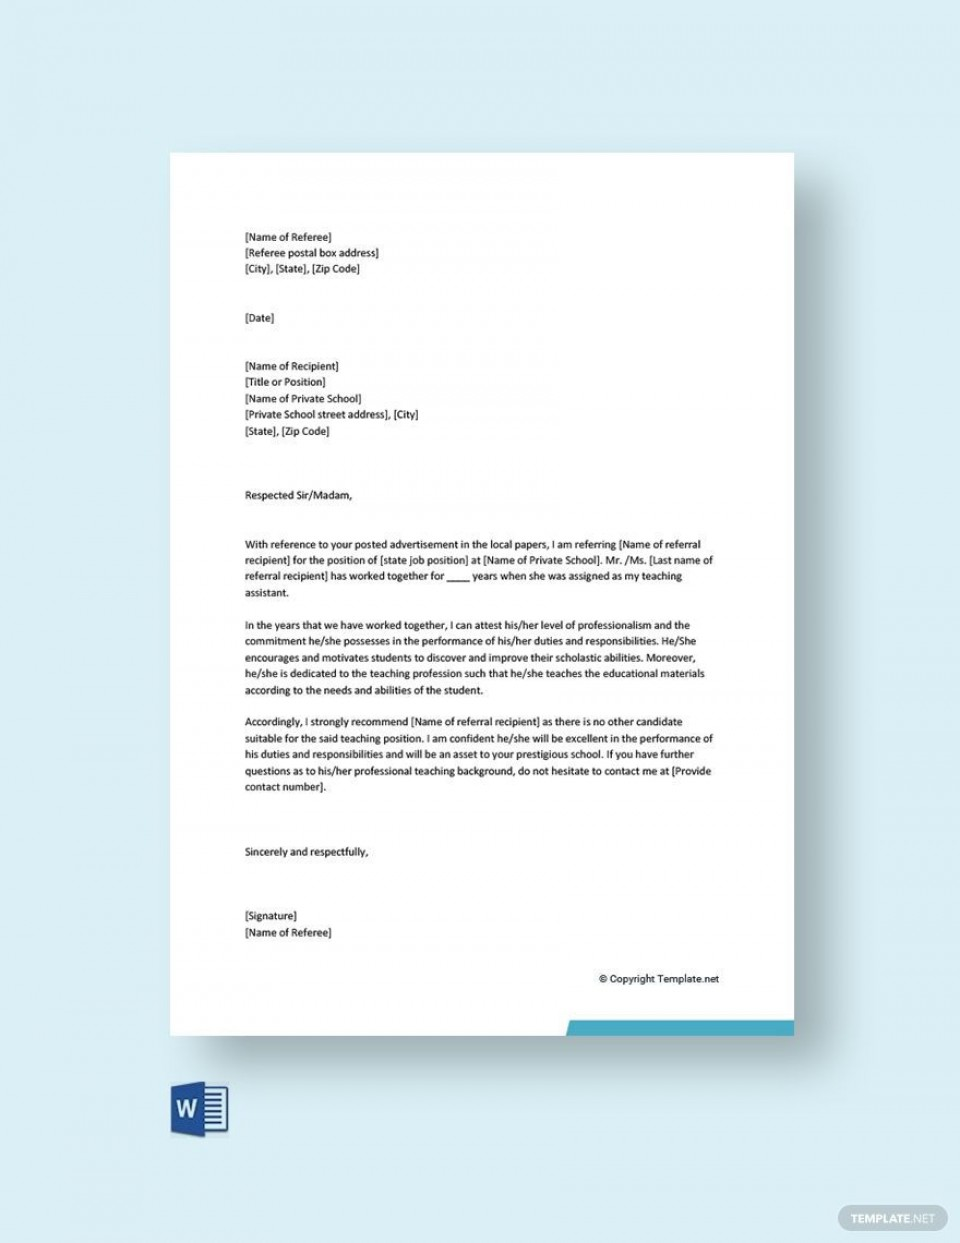 003 Fascinating Free Reference Letter Template Word Idea  For Employment Personal960